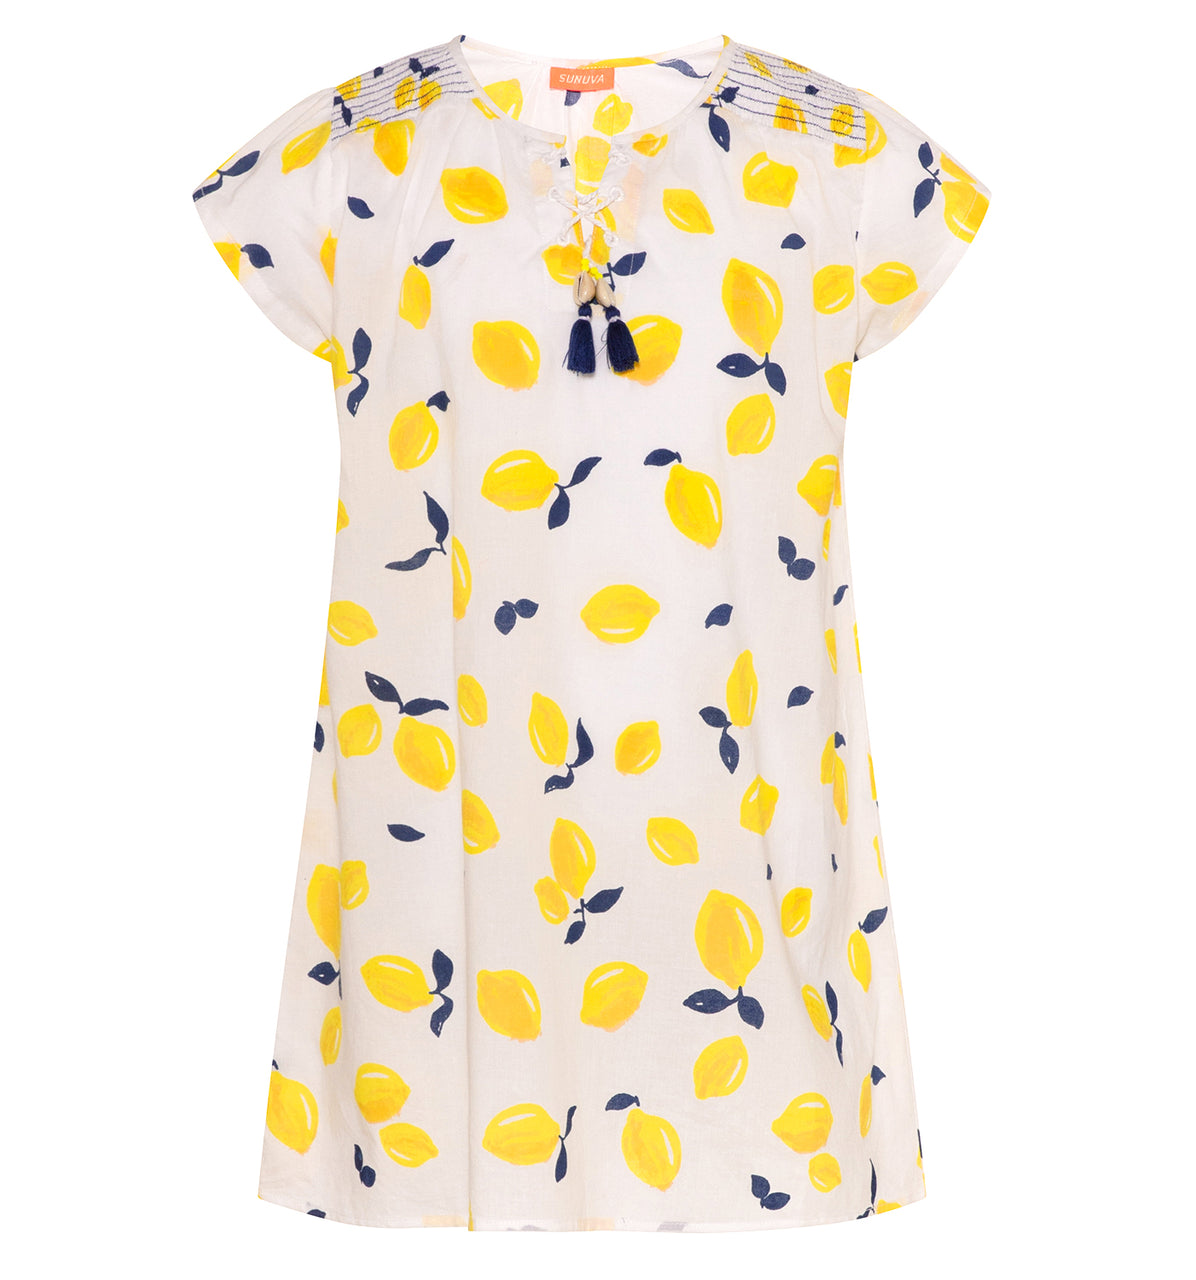 Sunuva girls lightweight cotton dress with yellow Sicilian lemon print and beautiful tassels with shells.